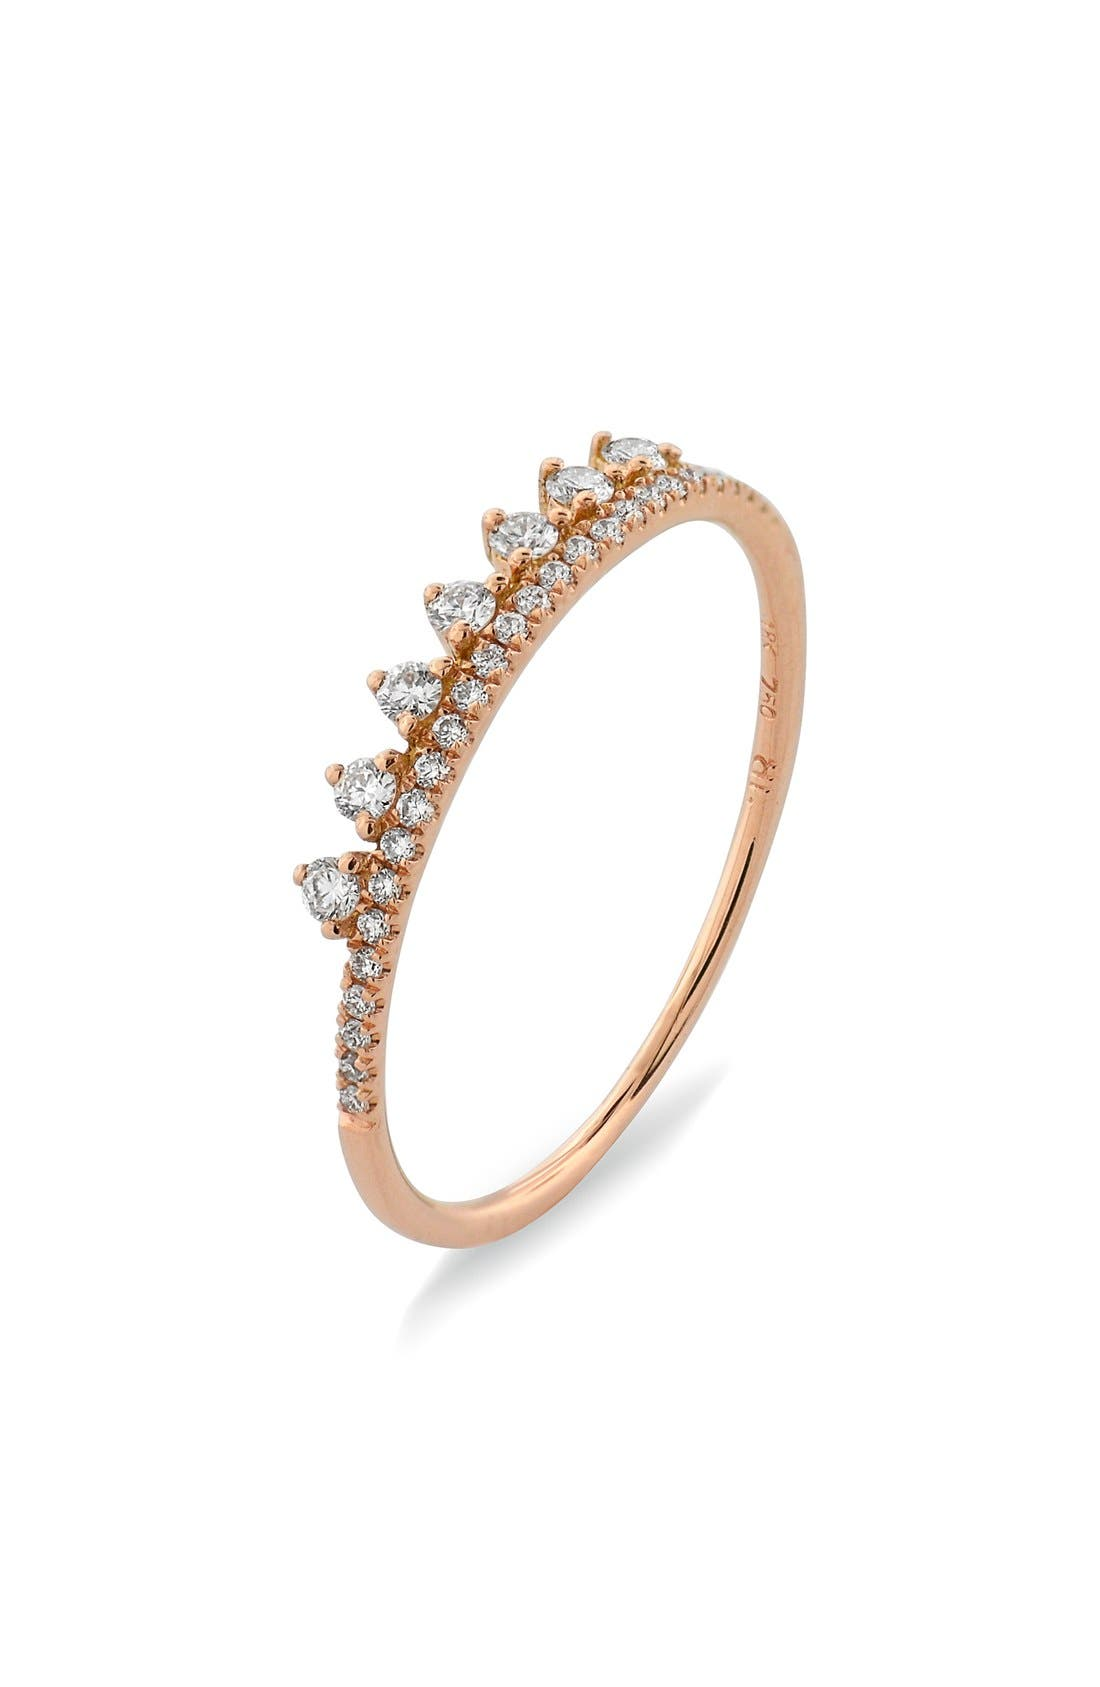 Main Image - Bony Levy 'Princess Crown' Stackable Diamond Ring (Nordstrom Exclusive)